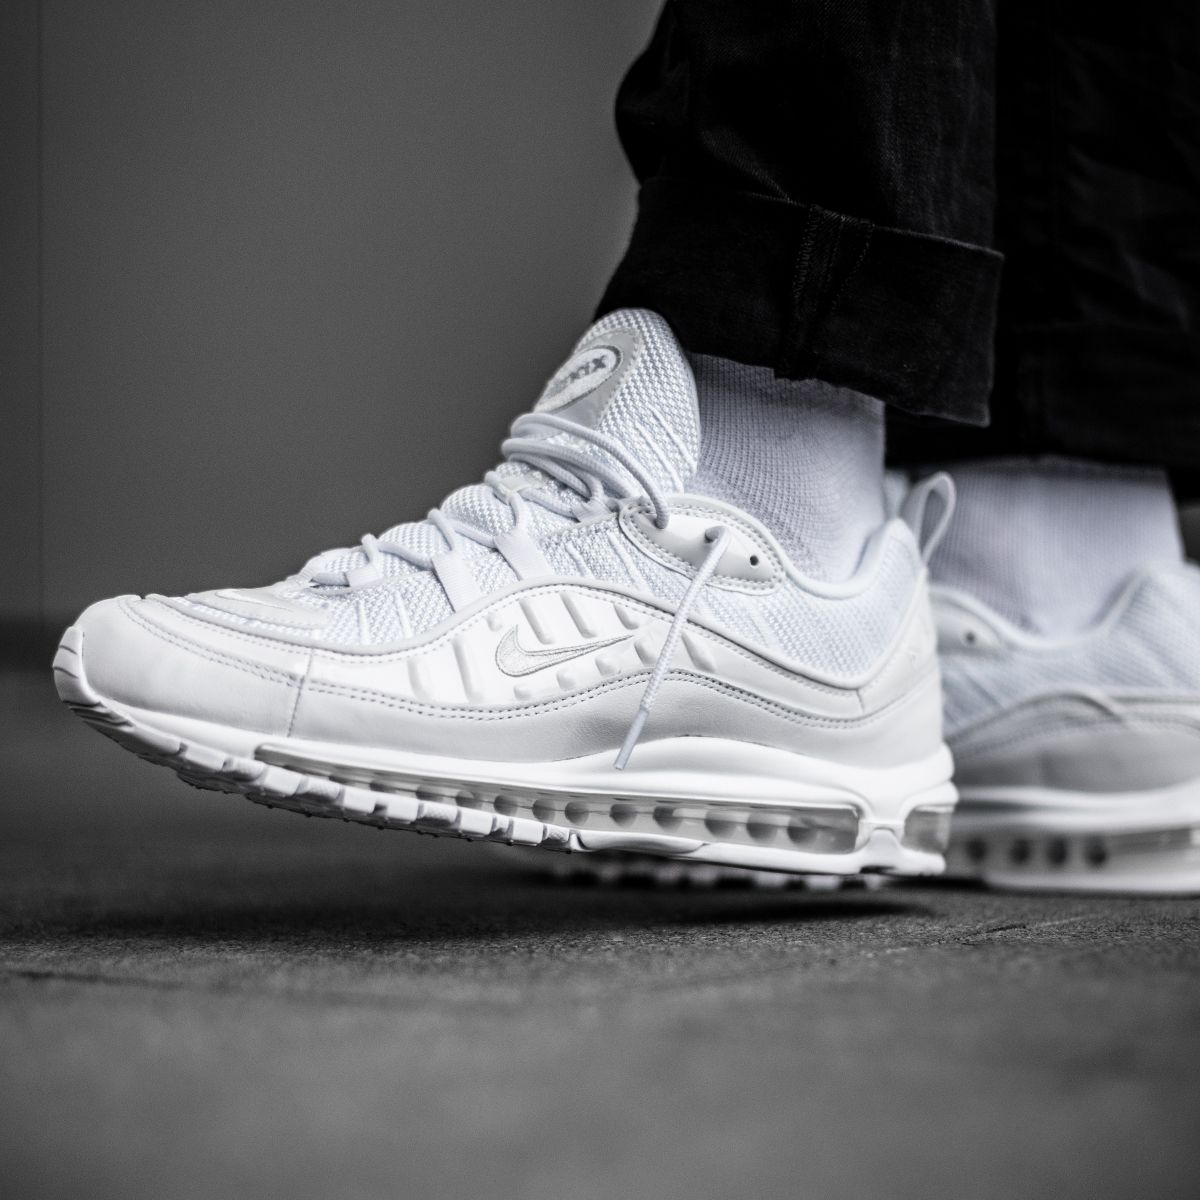 6137e0e34b 2019 的 Crispy clean! The Nike Air Max 98 in triple white is ...